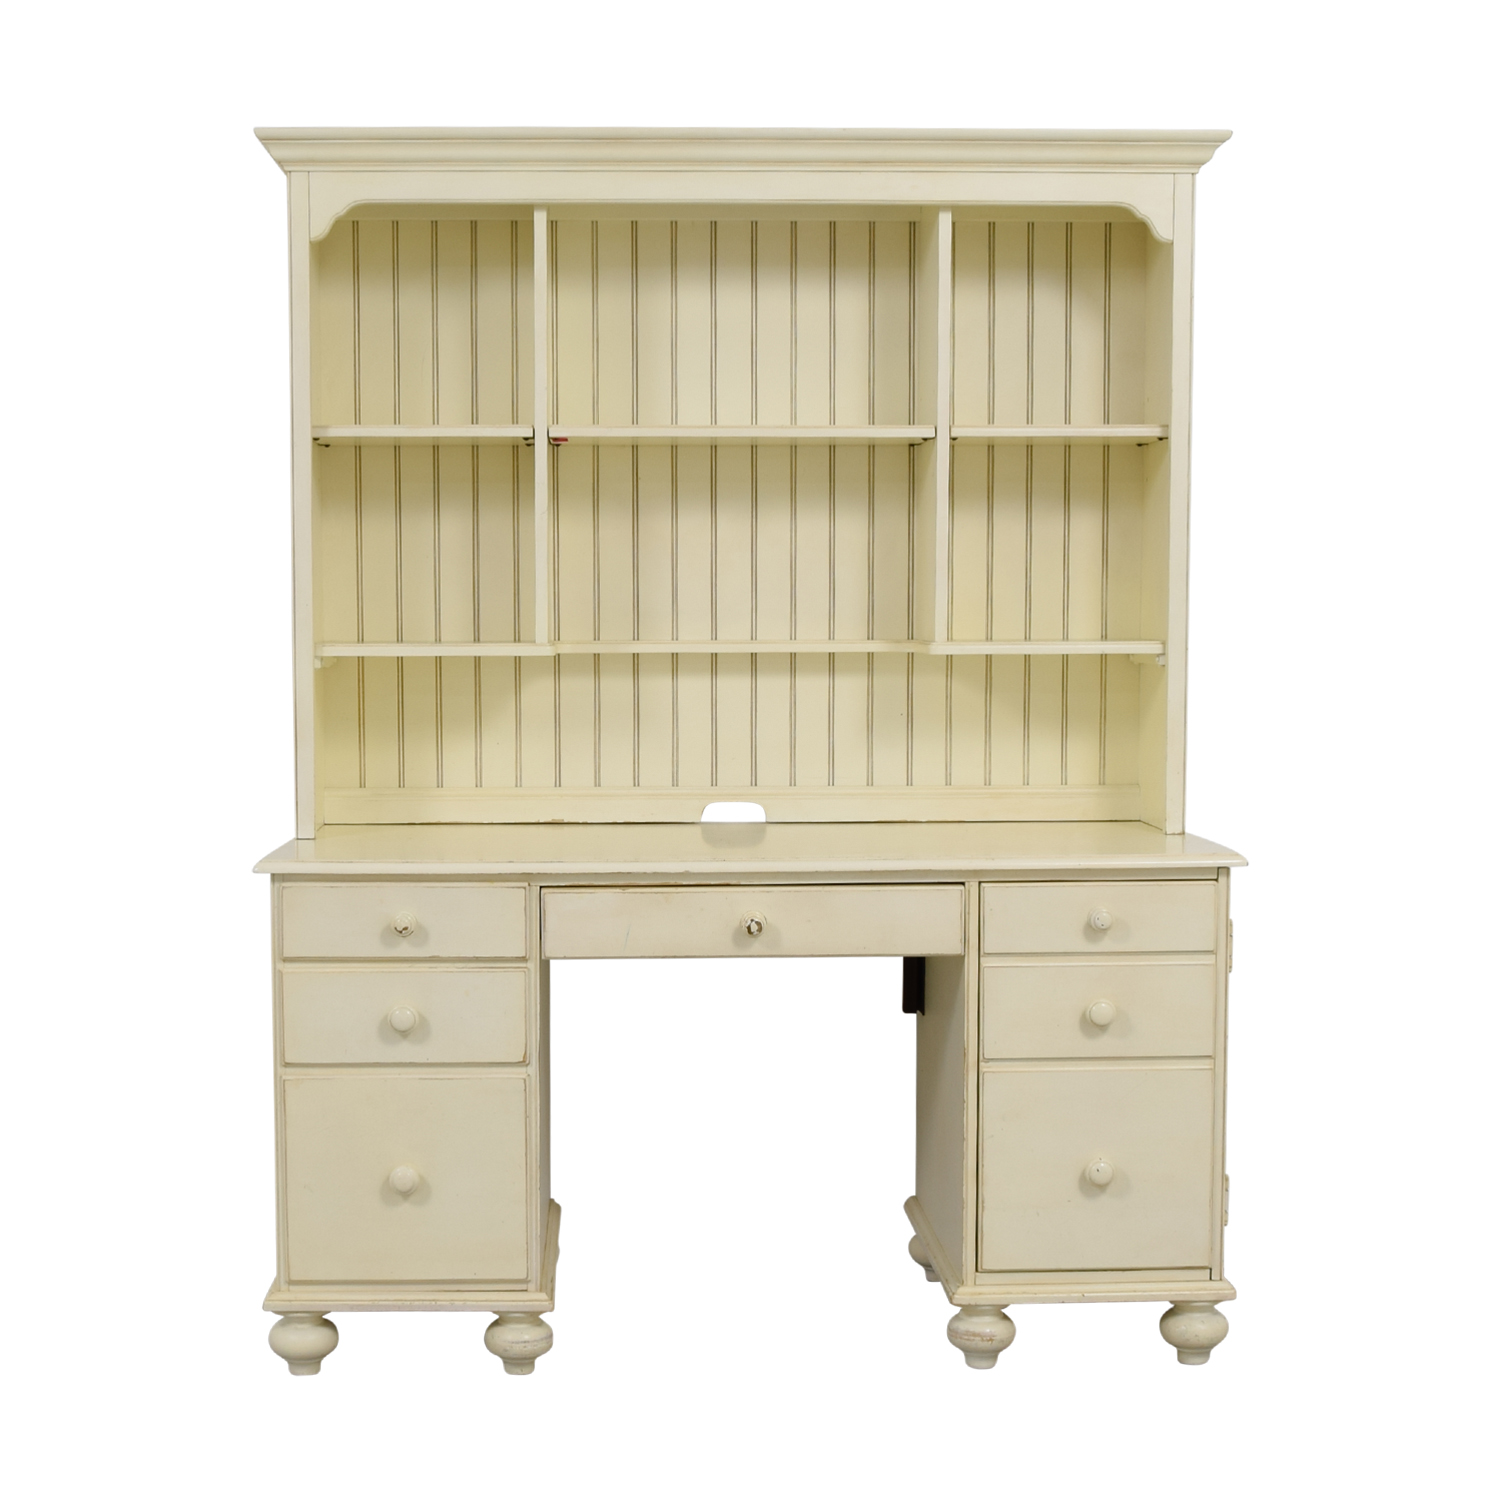 Ethan Allen Ethan Allen White Wood Desk with Hutch on sale